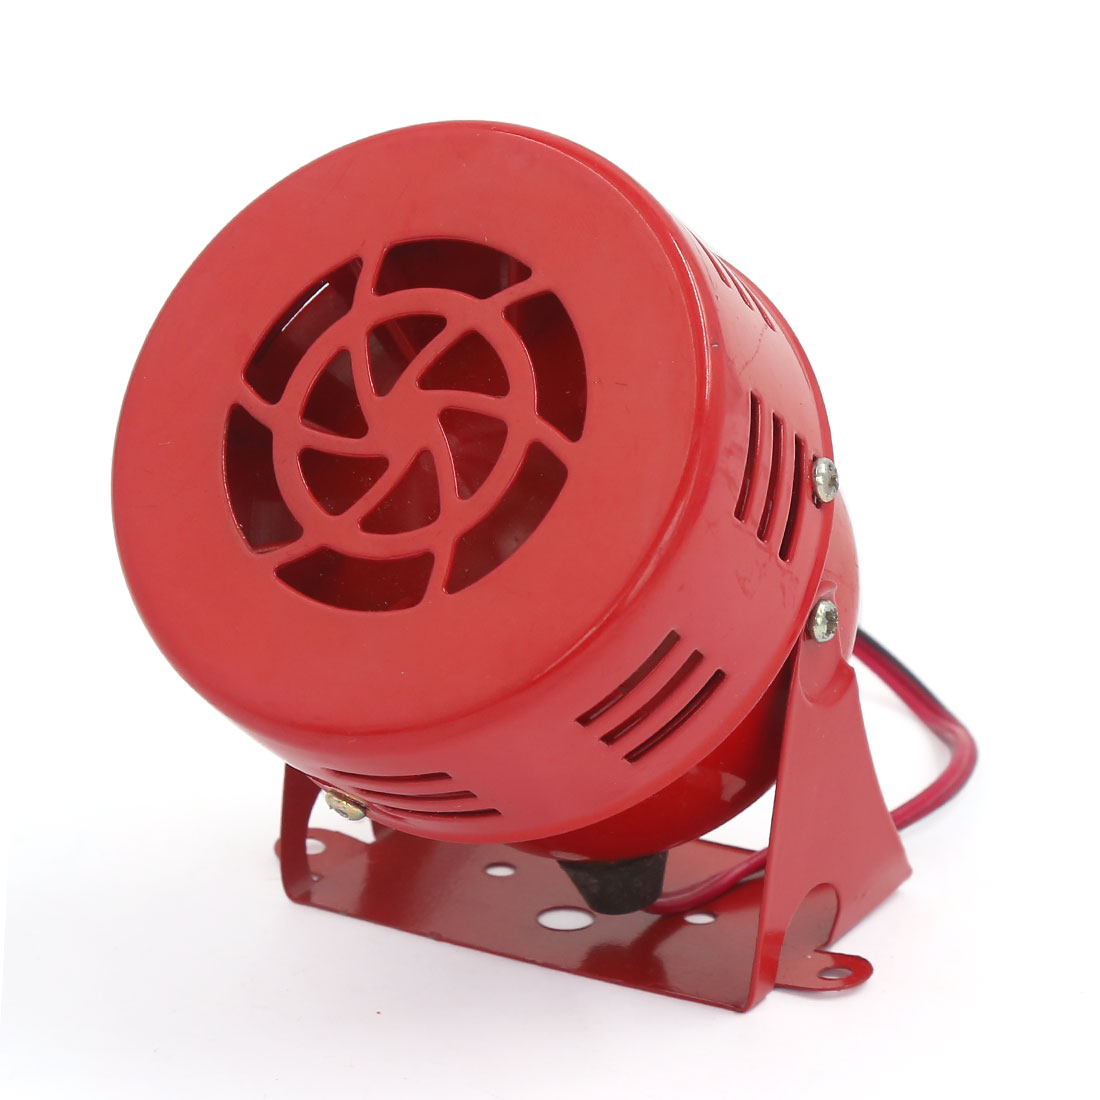 12V 24V Electric Car Truck Motorcycle Driven Air Raid Siren Horn Alarm 100dB